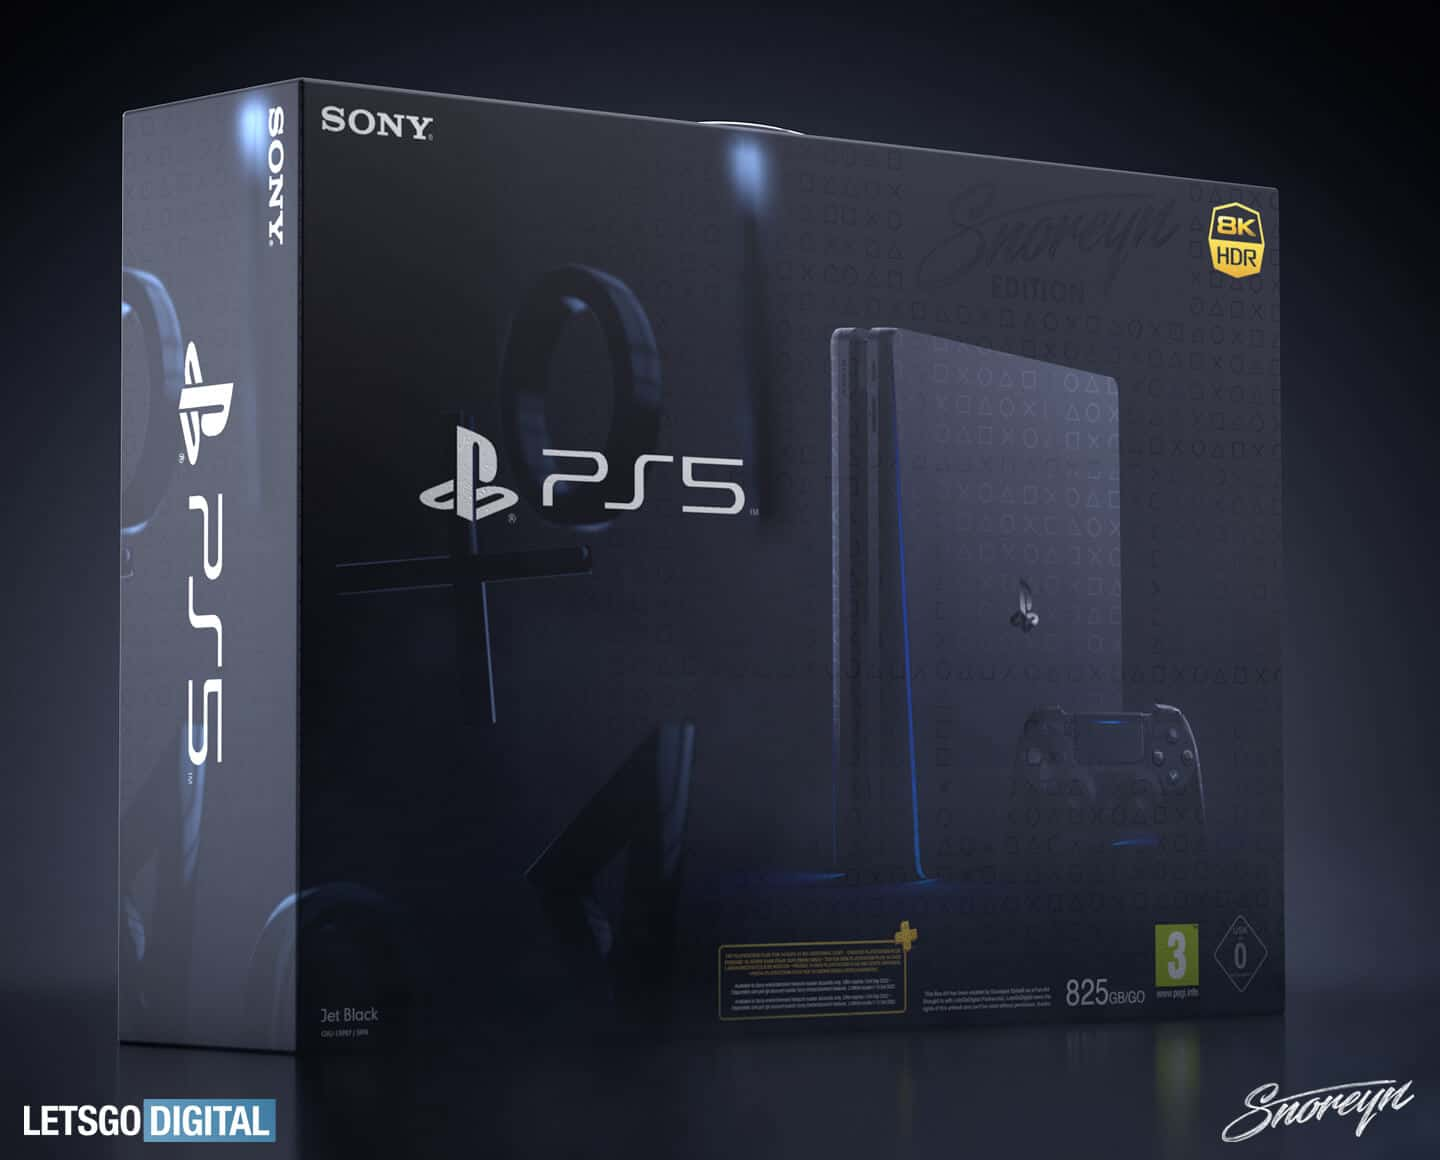 Epic is praising the PS5! But did you know it's an old tradition?